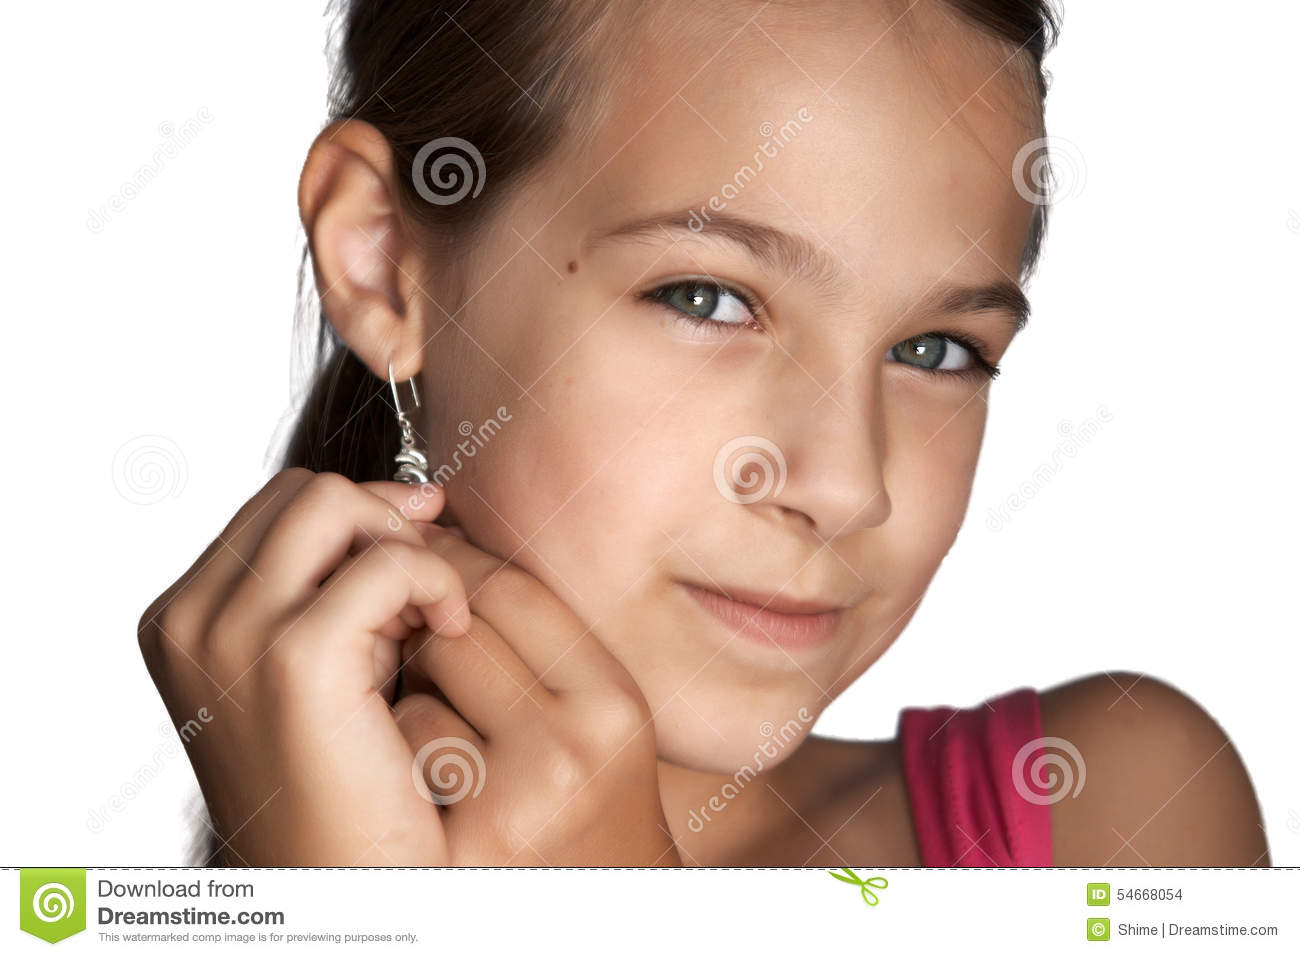 Girl Puts Earrings Stock Photo Image Of Style Blue 54668054